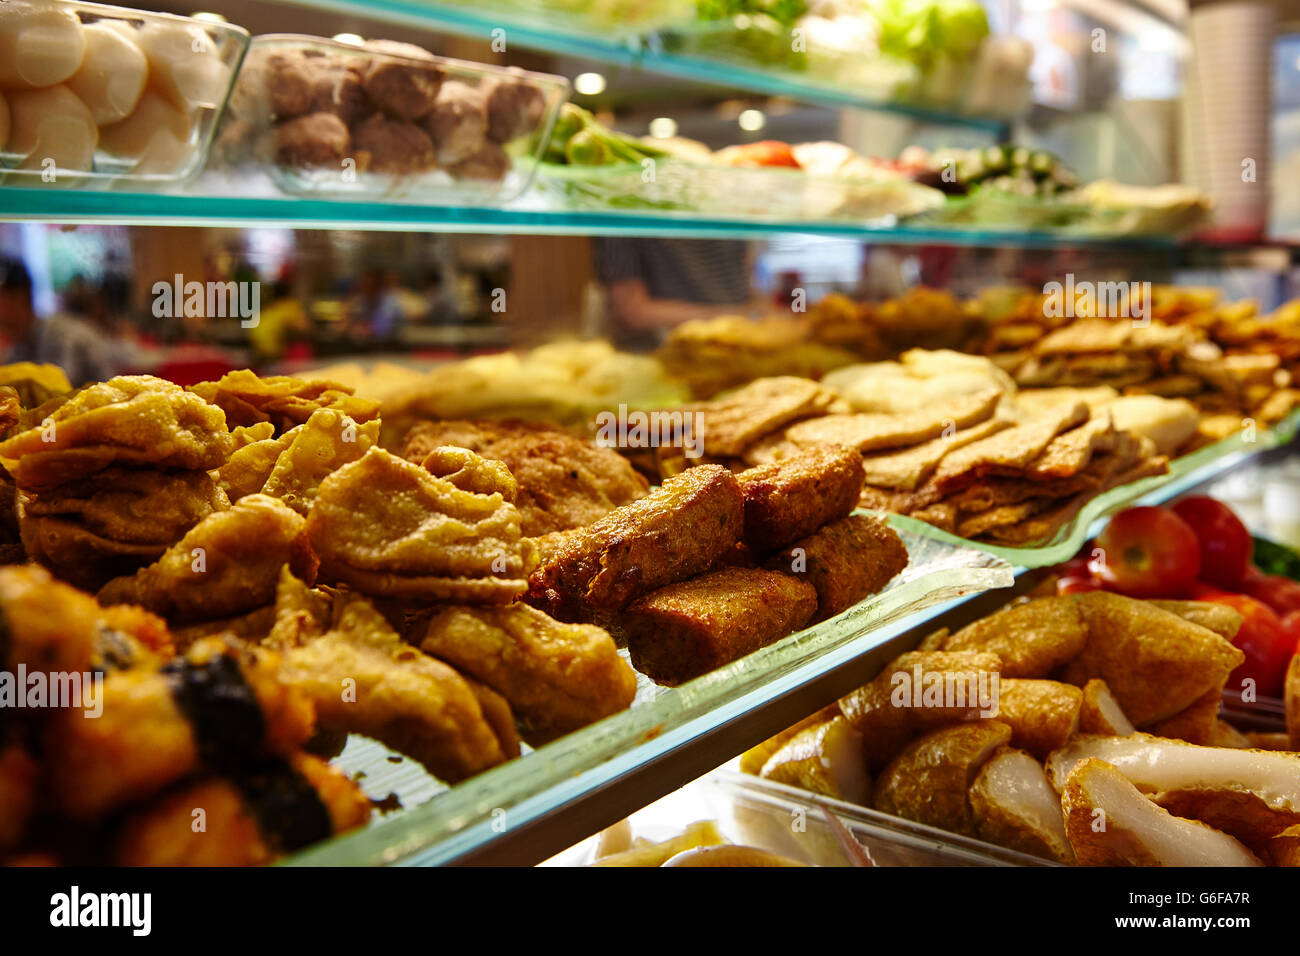 Close up of Yong Tau Foo, a vegetarian selection at a Hawker Stall in Singapore. - Stock Image